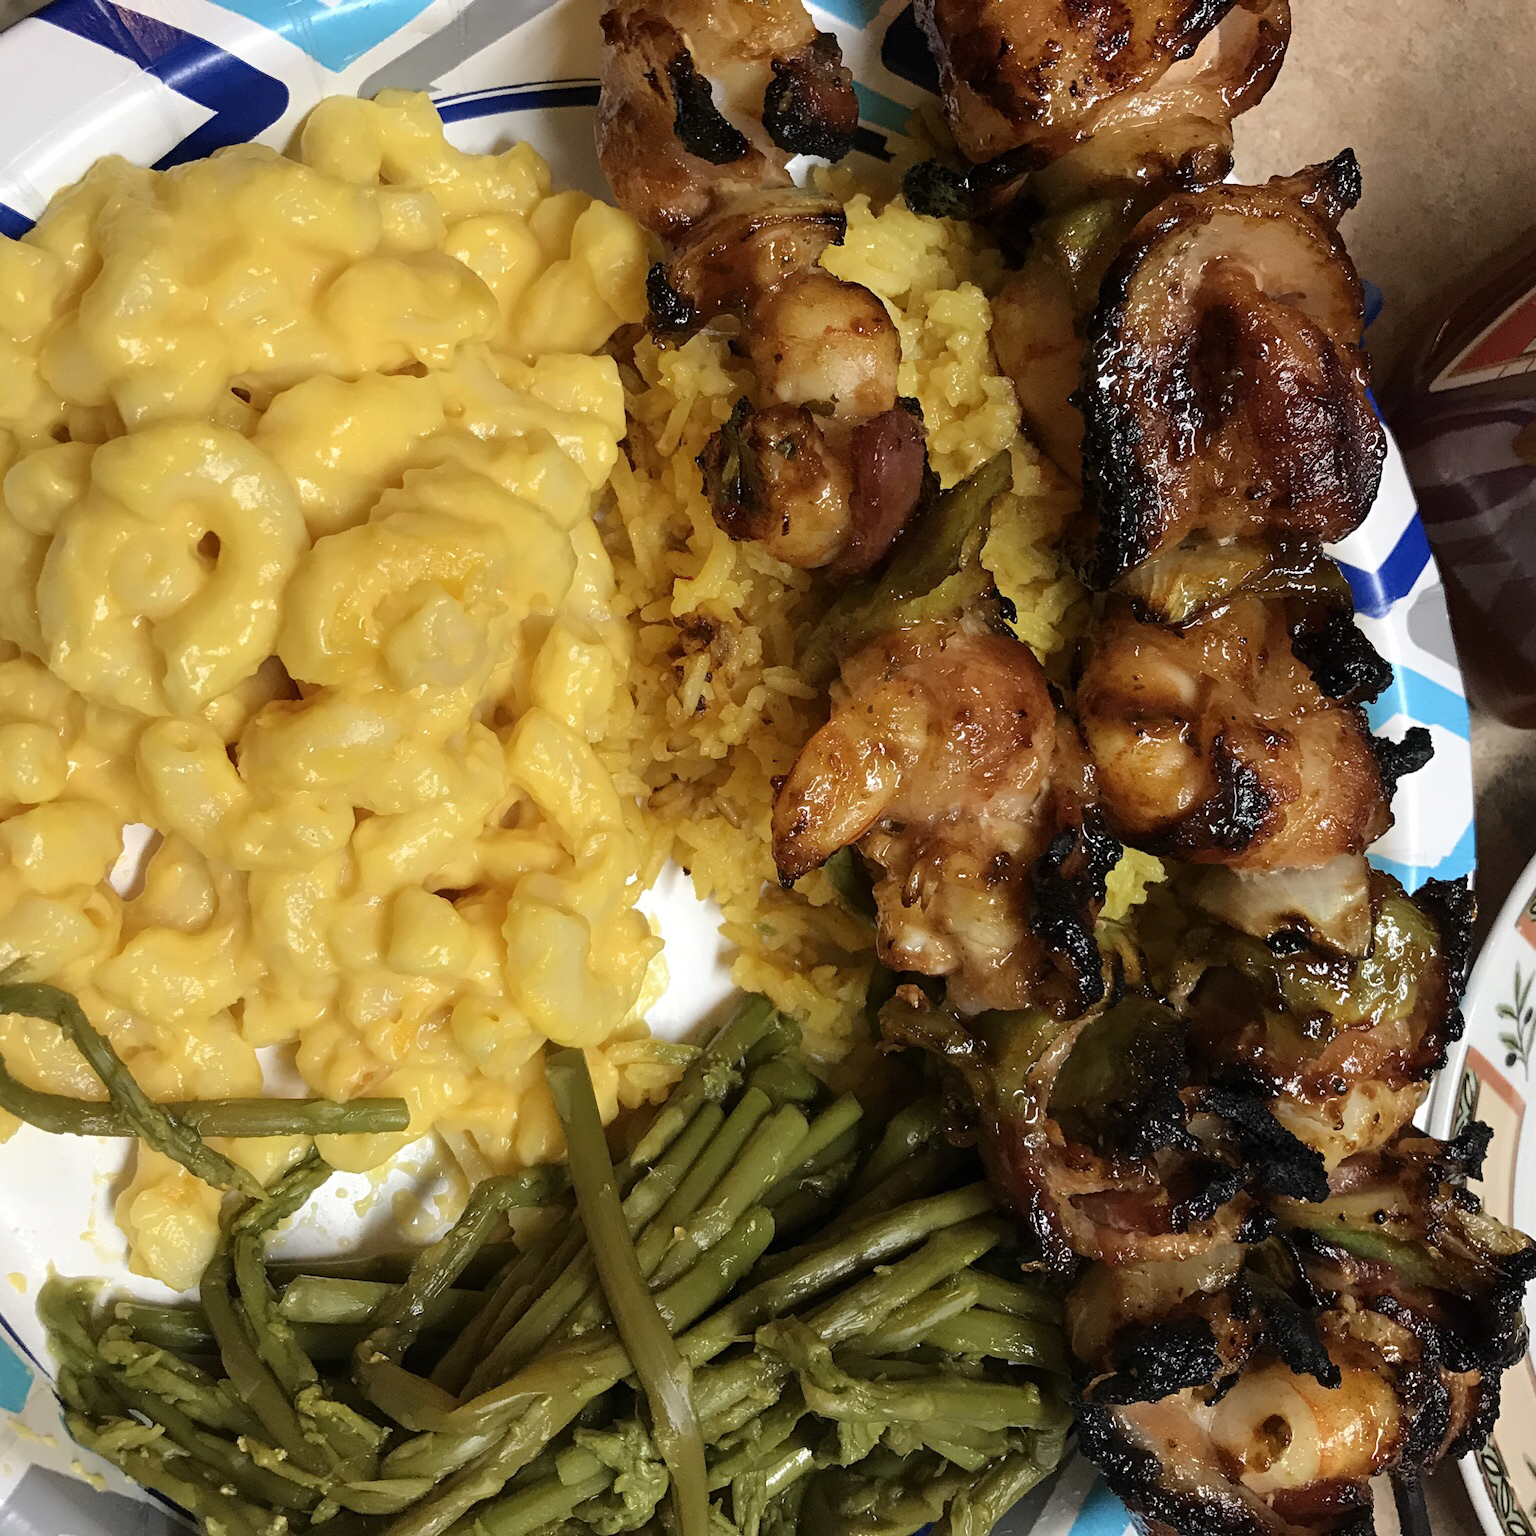 Bacon Wrapped Barbeque Shrimp Carrie Myers Stinchcomb